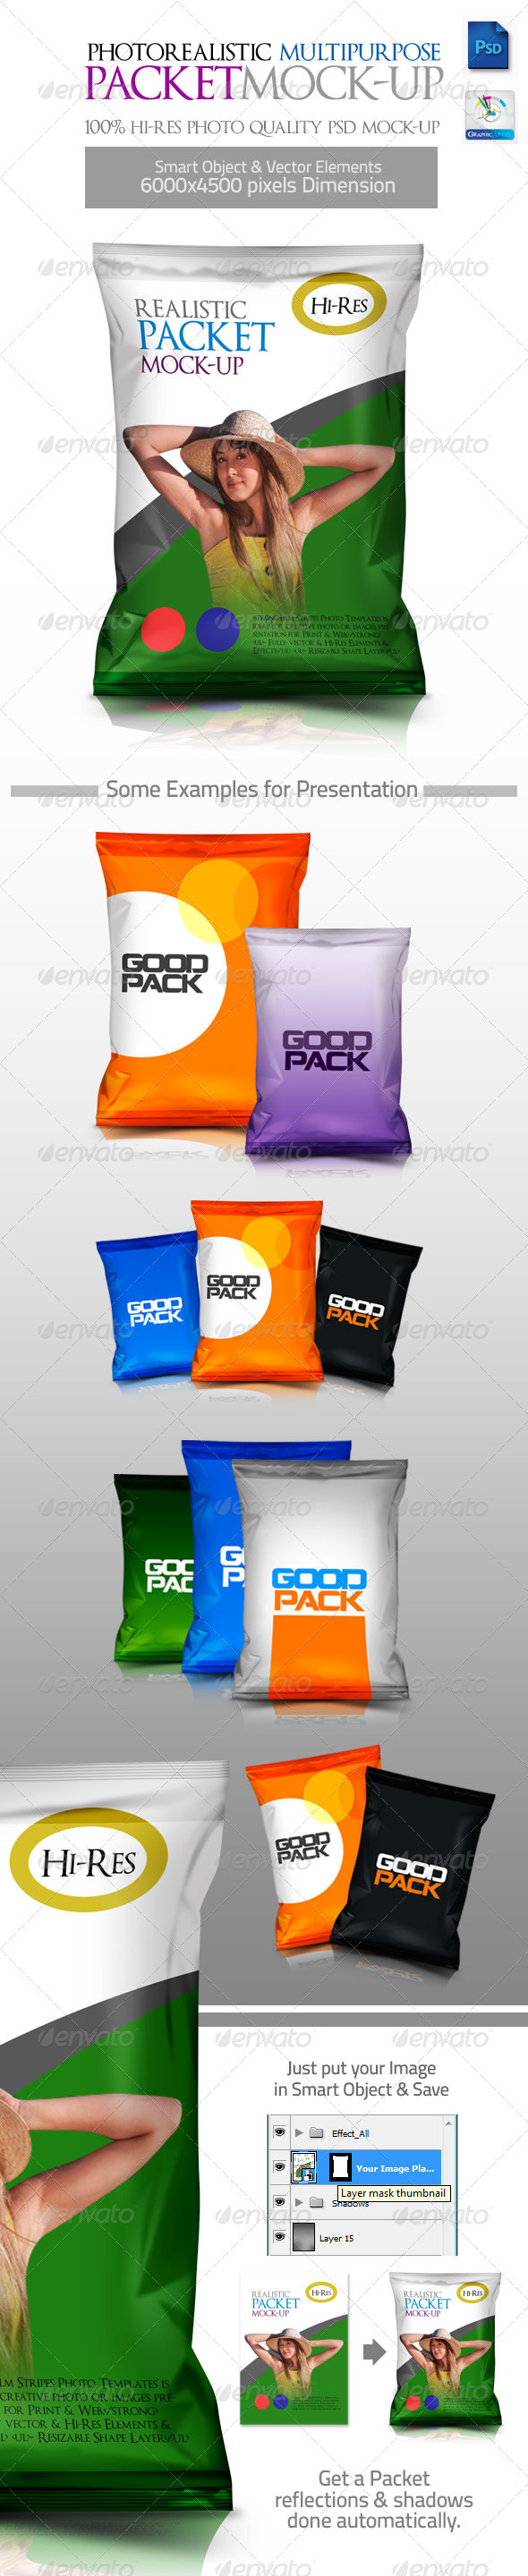 Photorealistic Multipurpose Packet Mock-up - Food and Drink Packaging